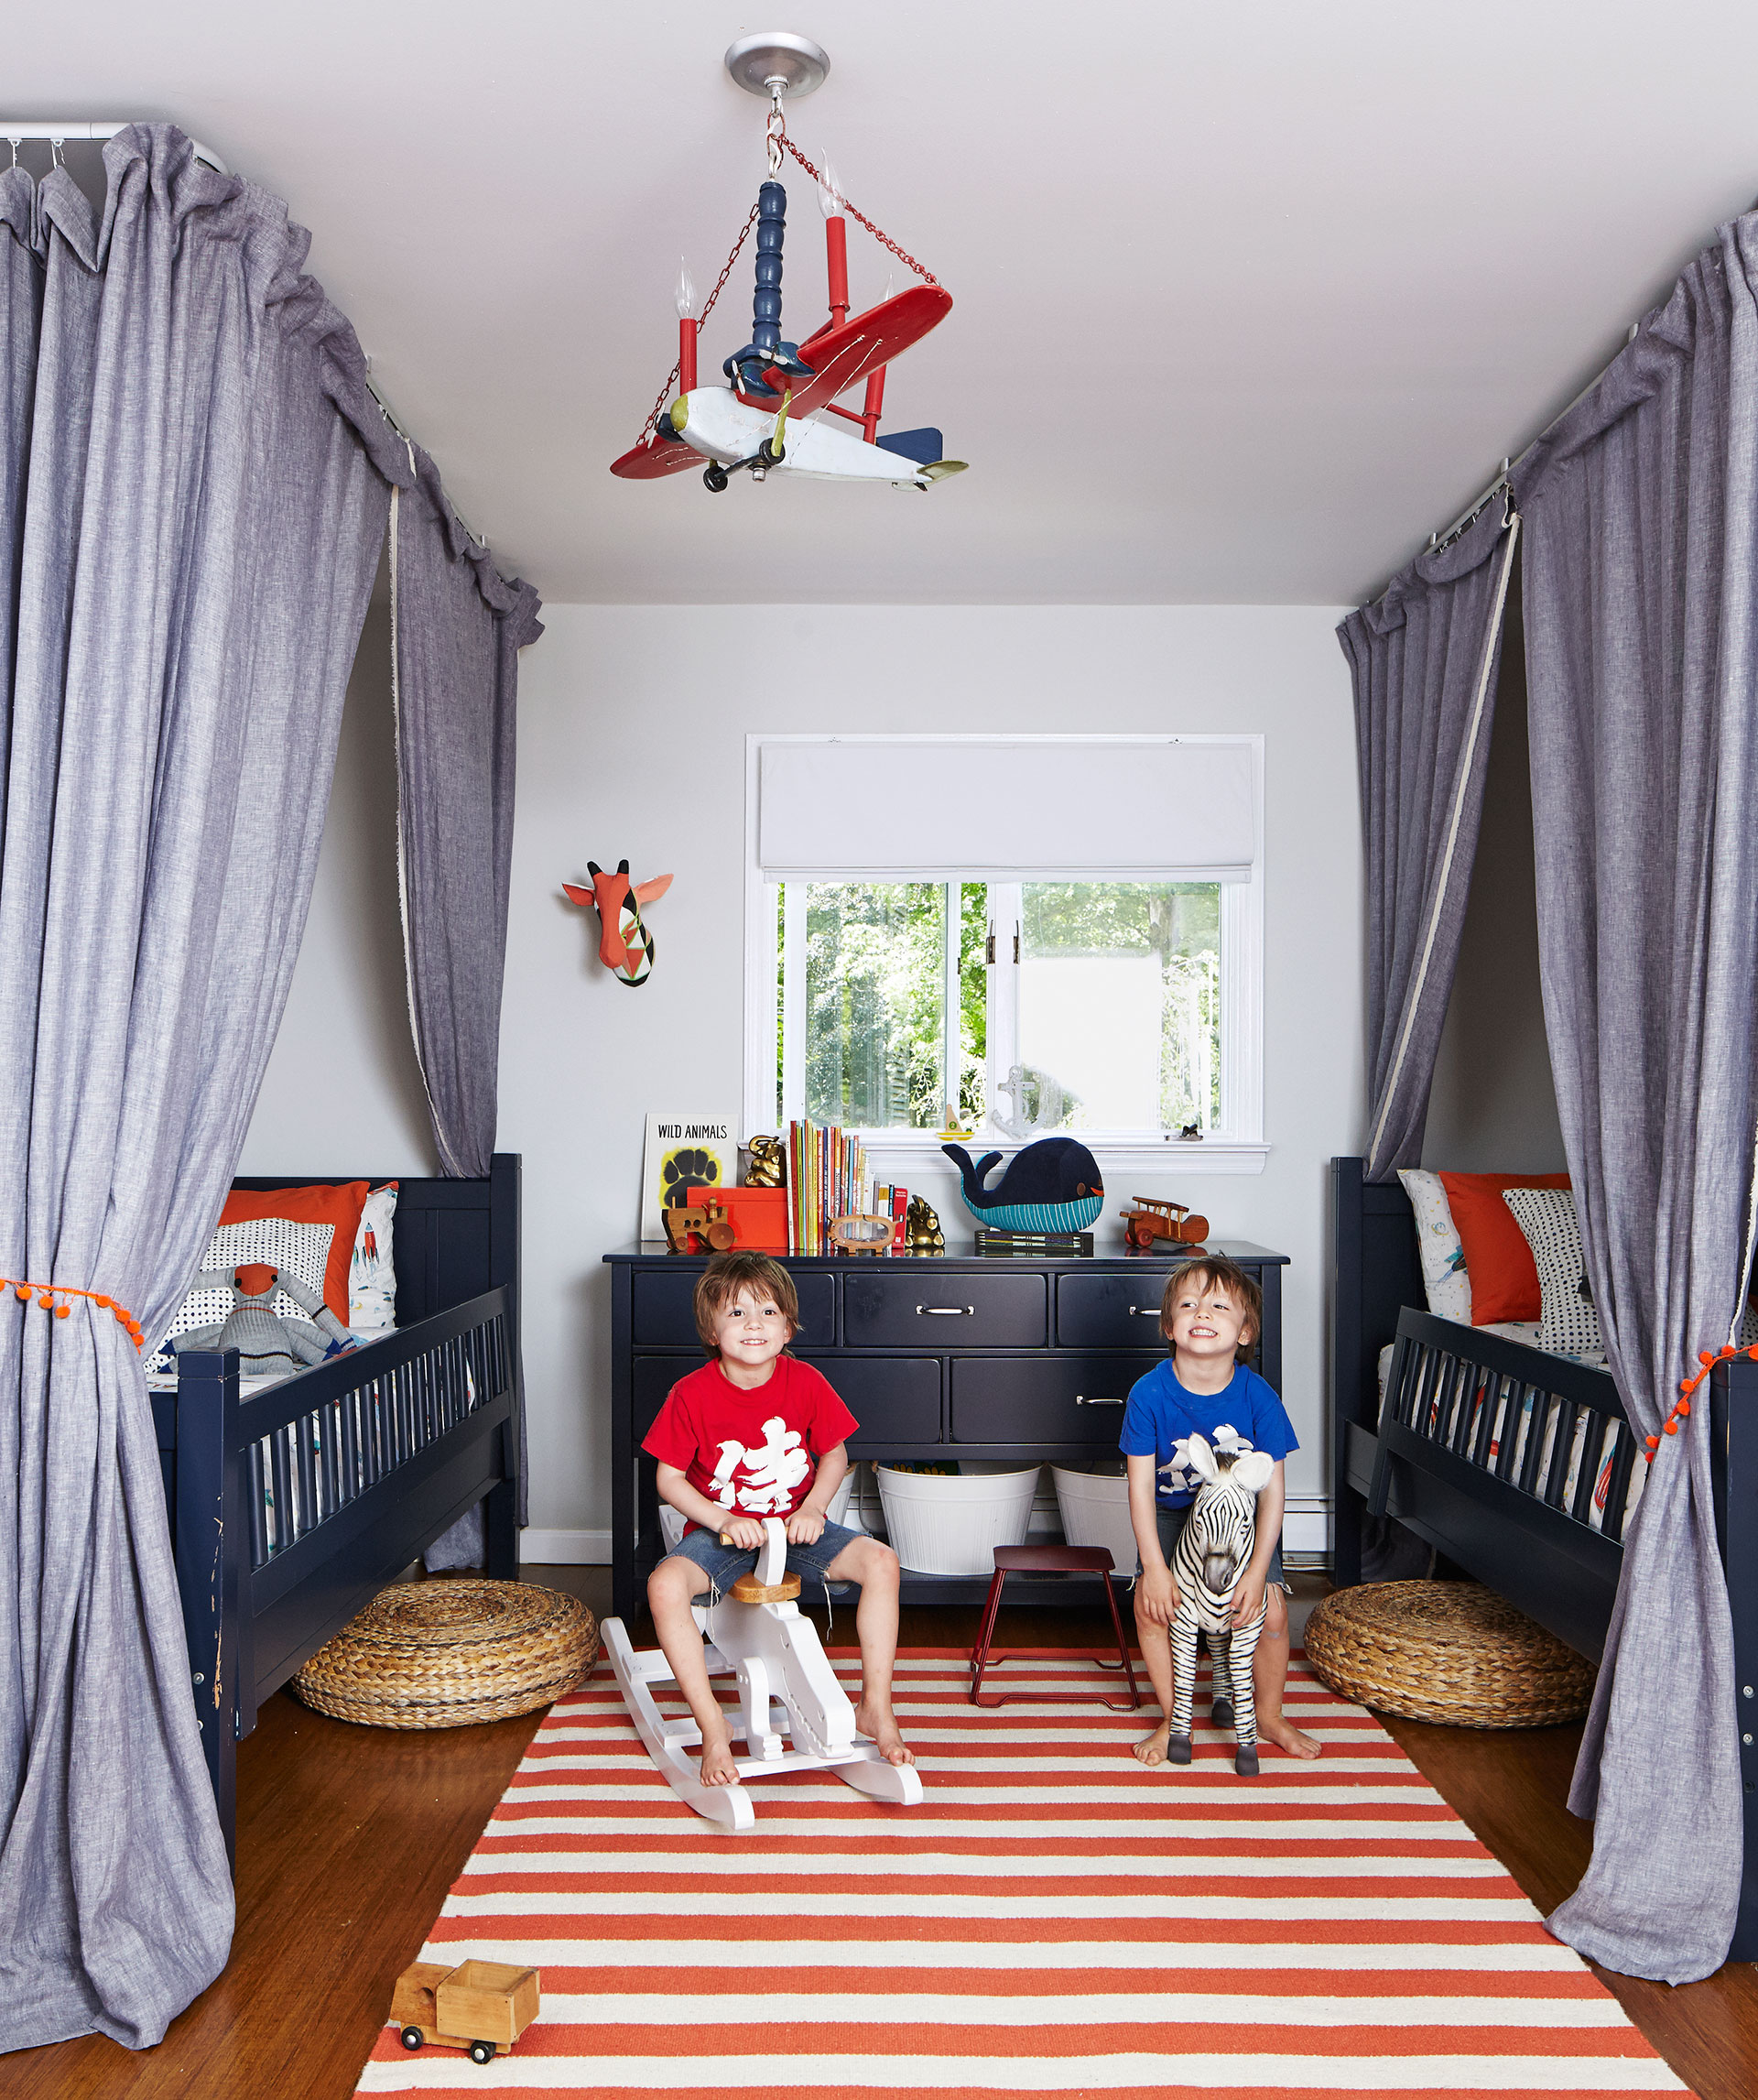 50 kids room decor ideas bedroom design and decorating for kids - Boys Room Ideas